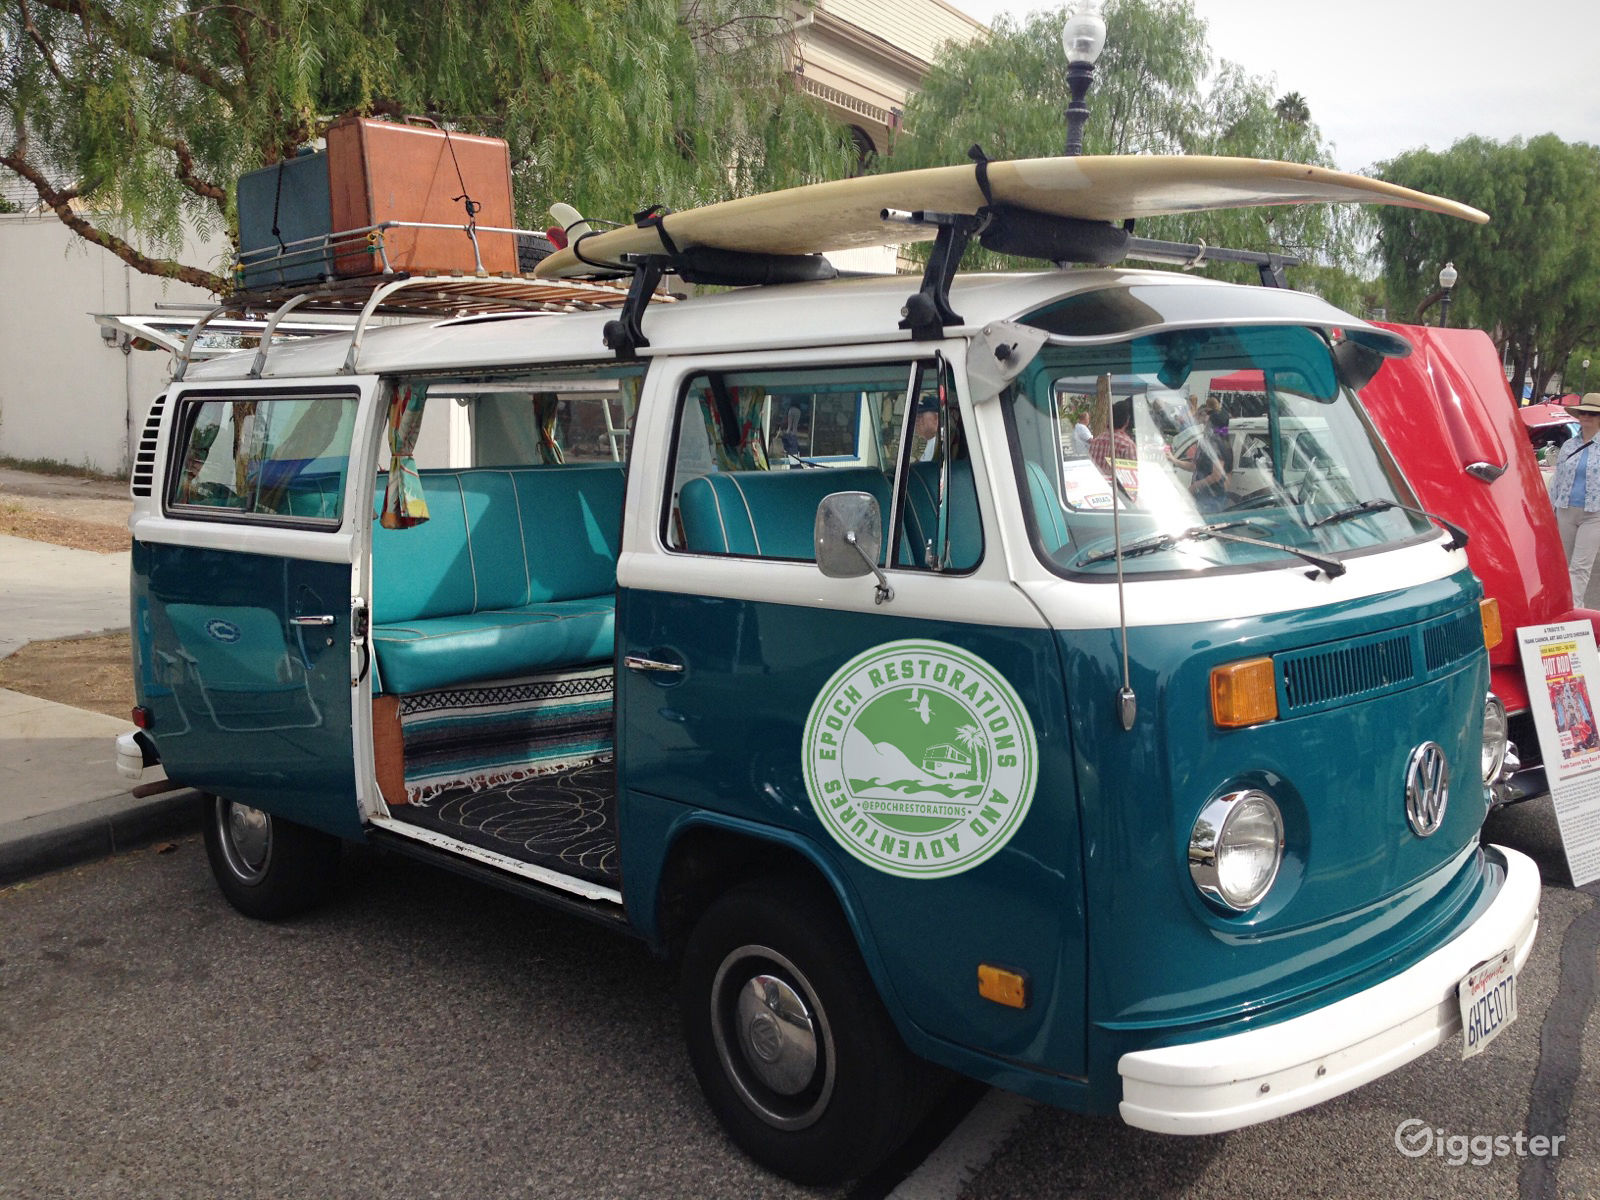 Beautifully Restored 1979 Vw Bus W Vintage Charm Rent This